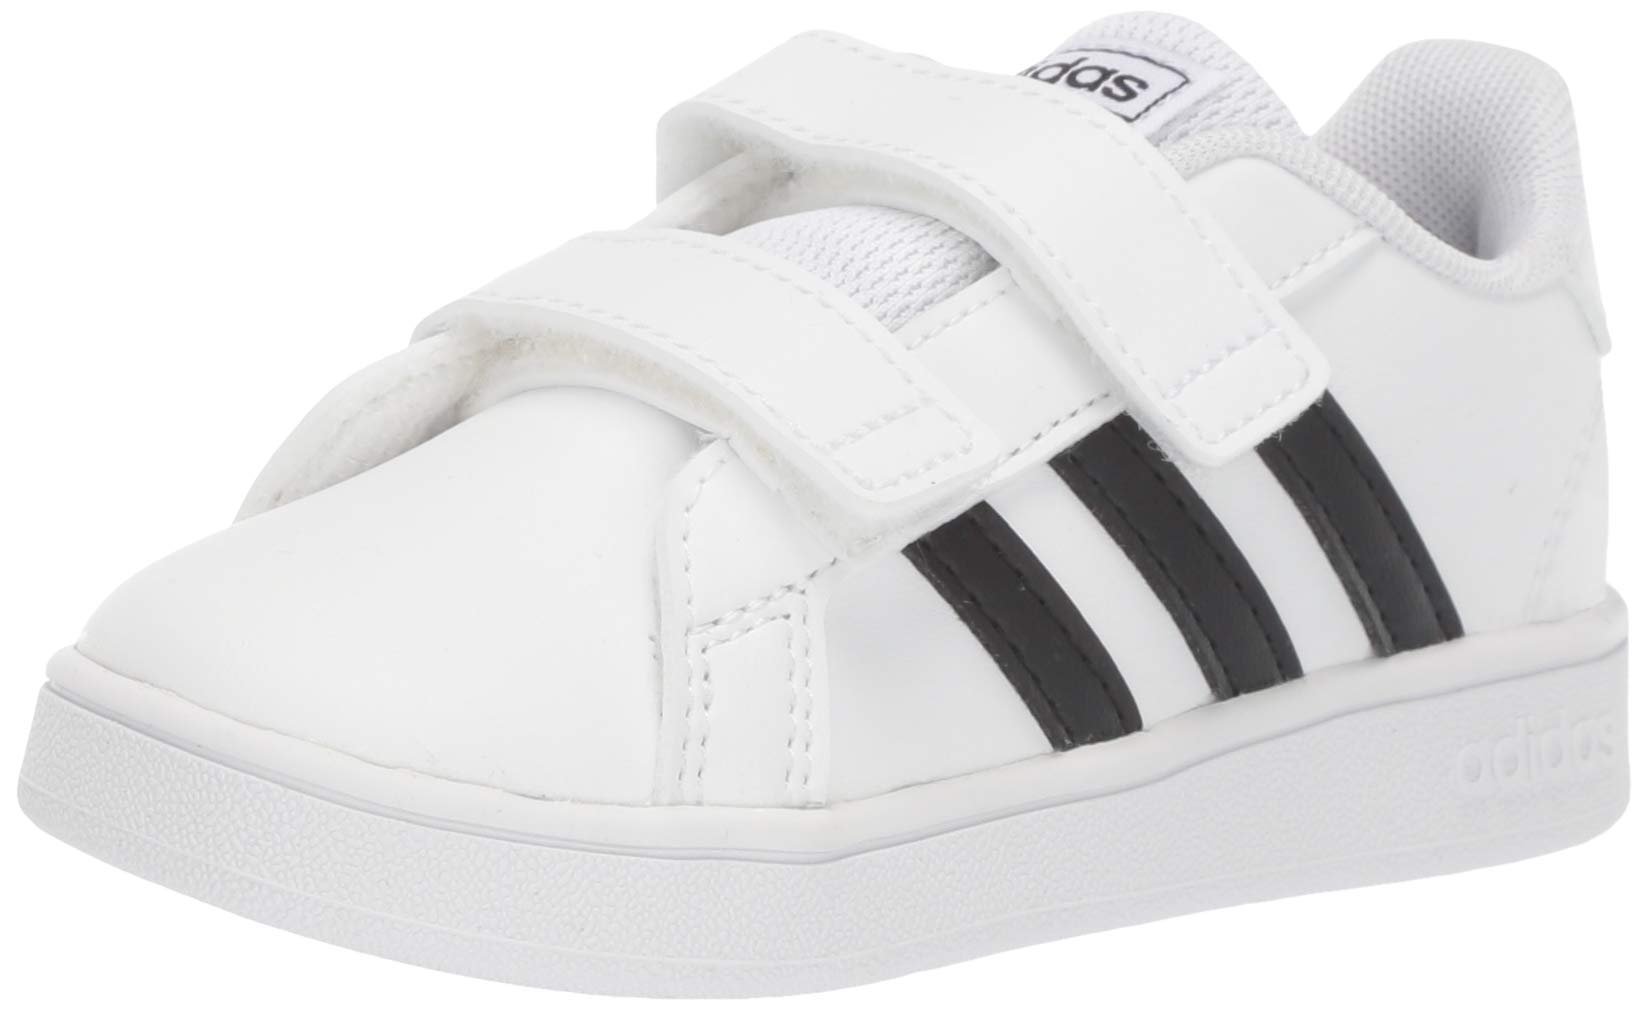 adidas Baby Grand Court Sneaker, Black/White, 6K M US Toddler by adidas